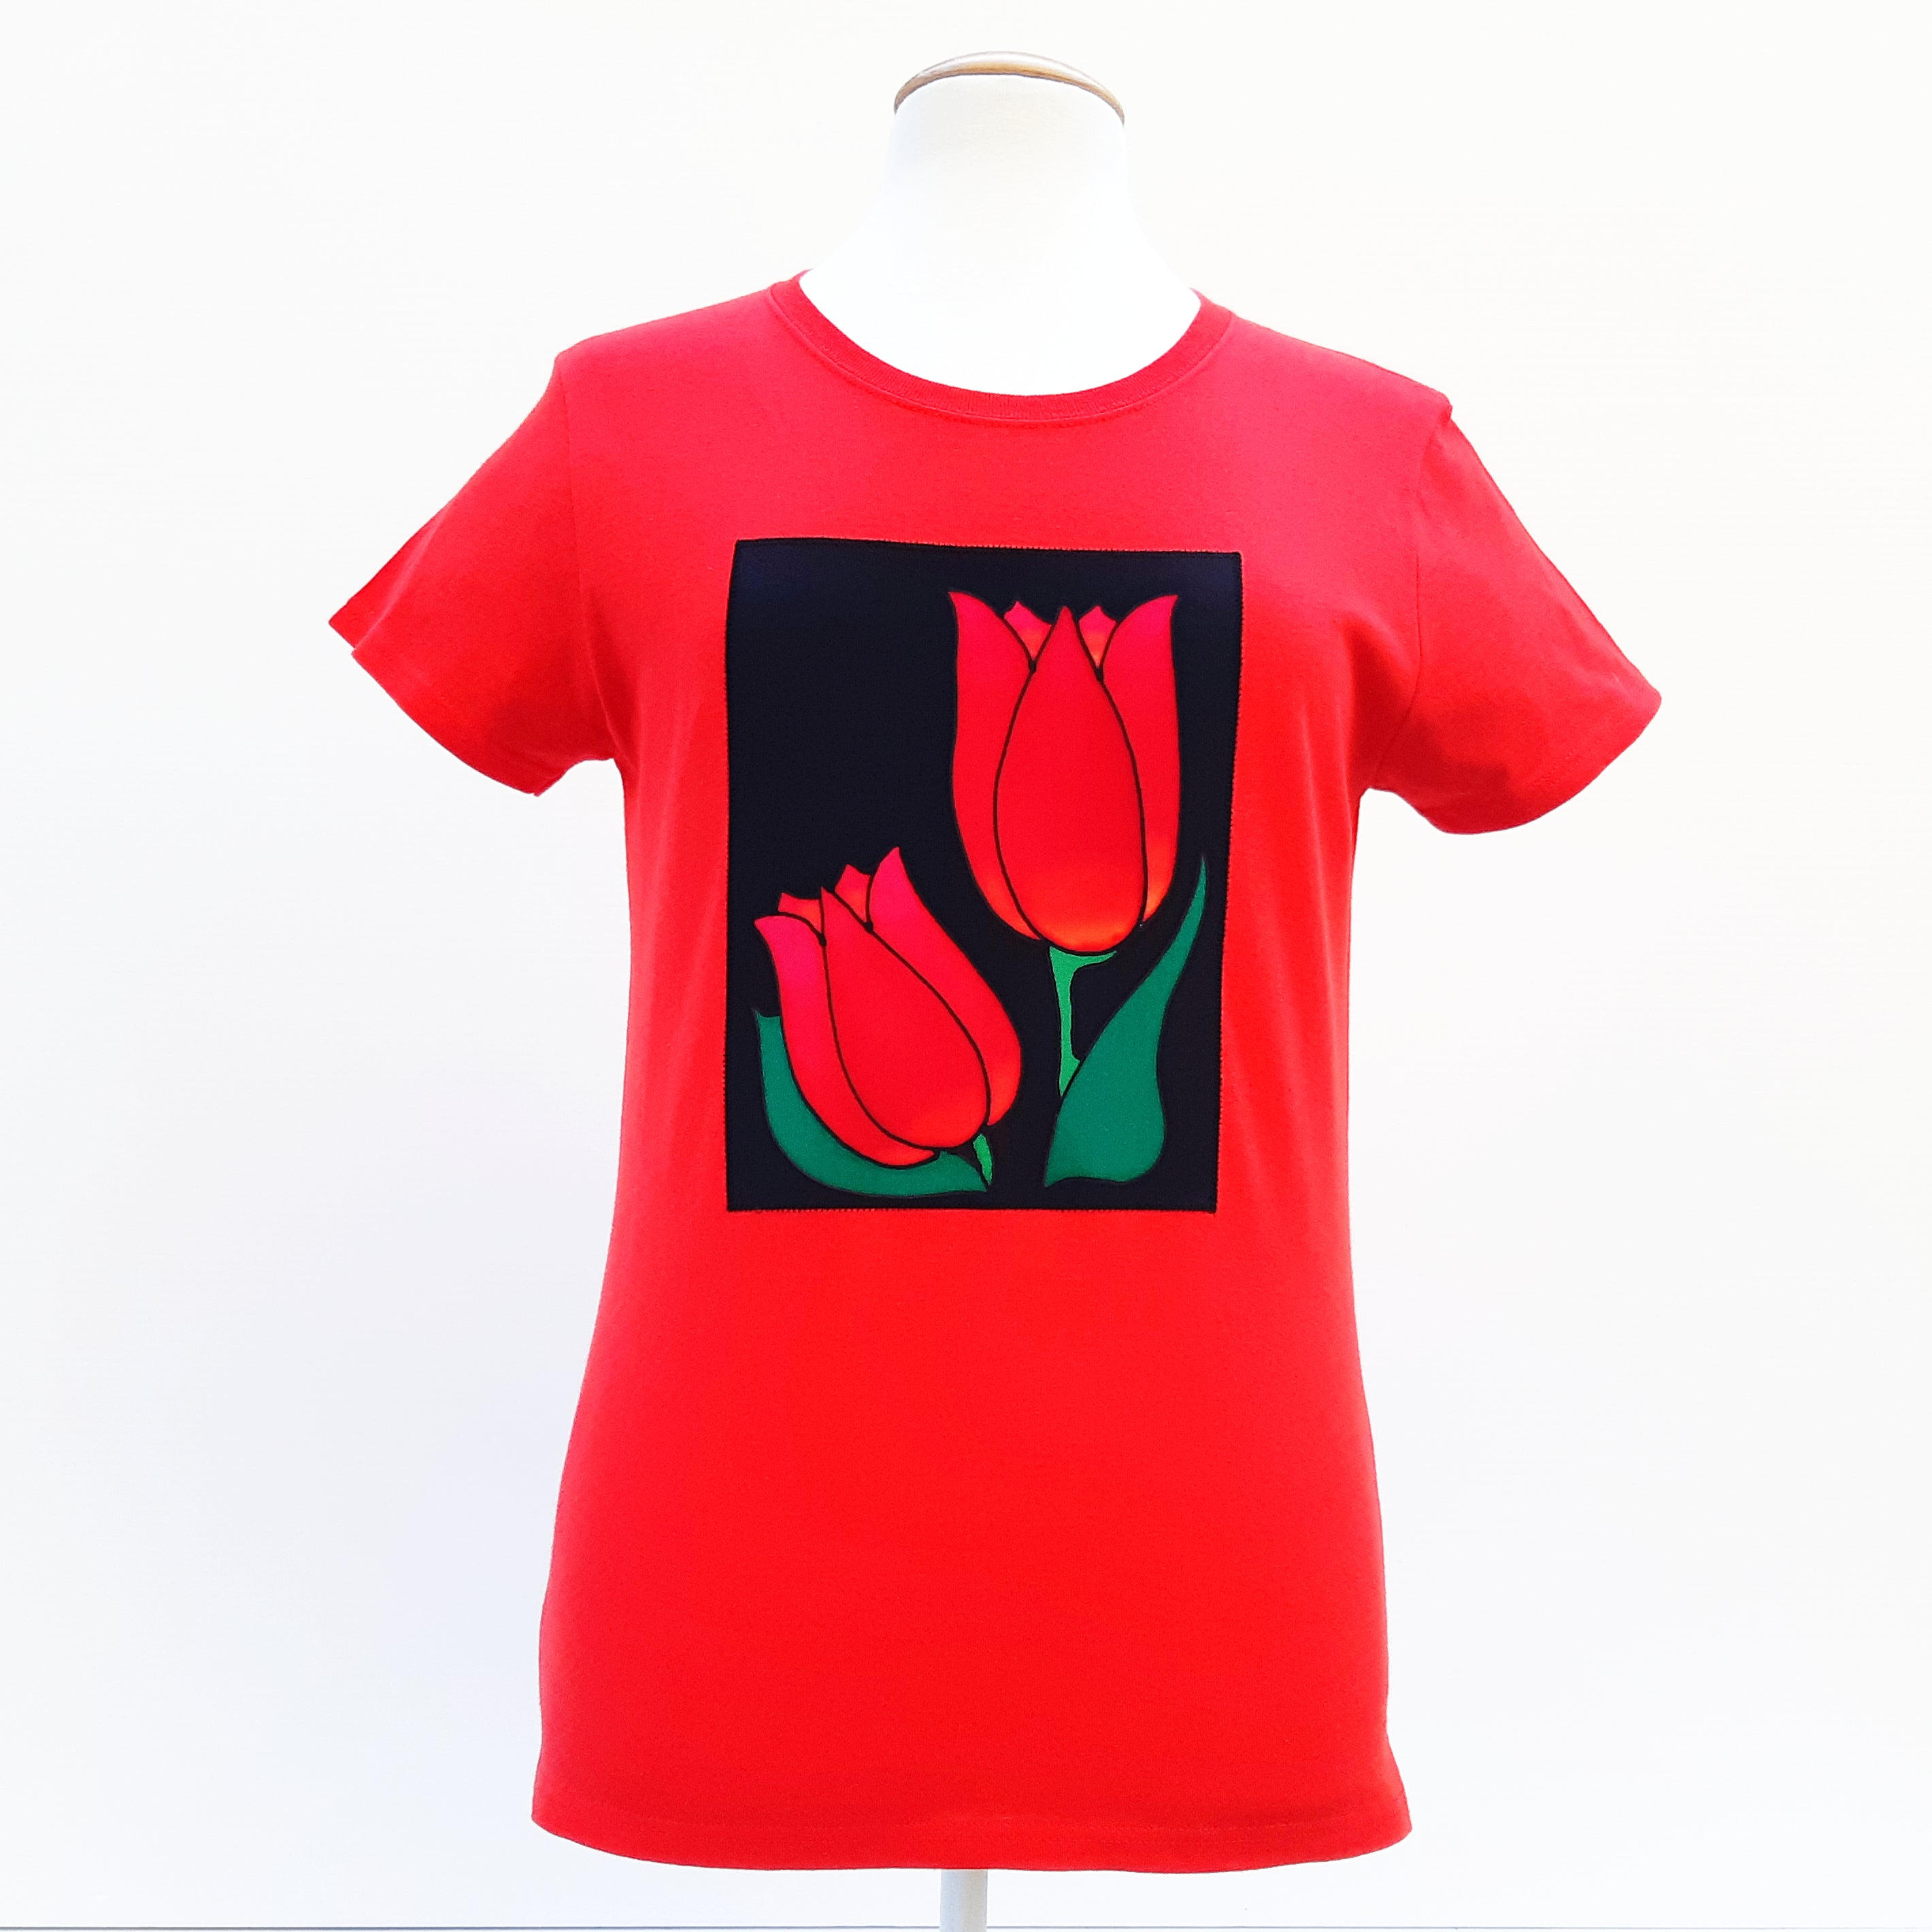 100% cotton t-shirt semi fitted ladies